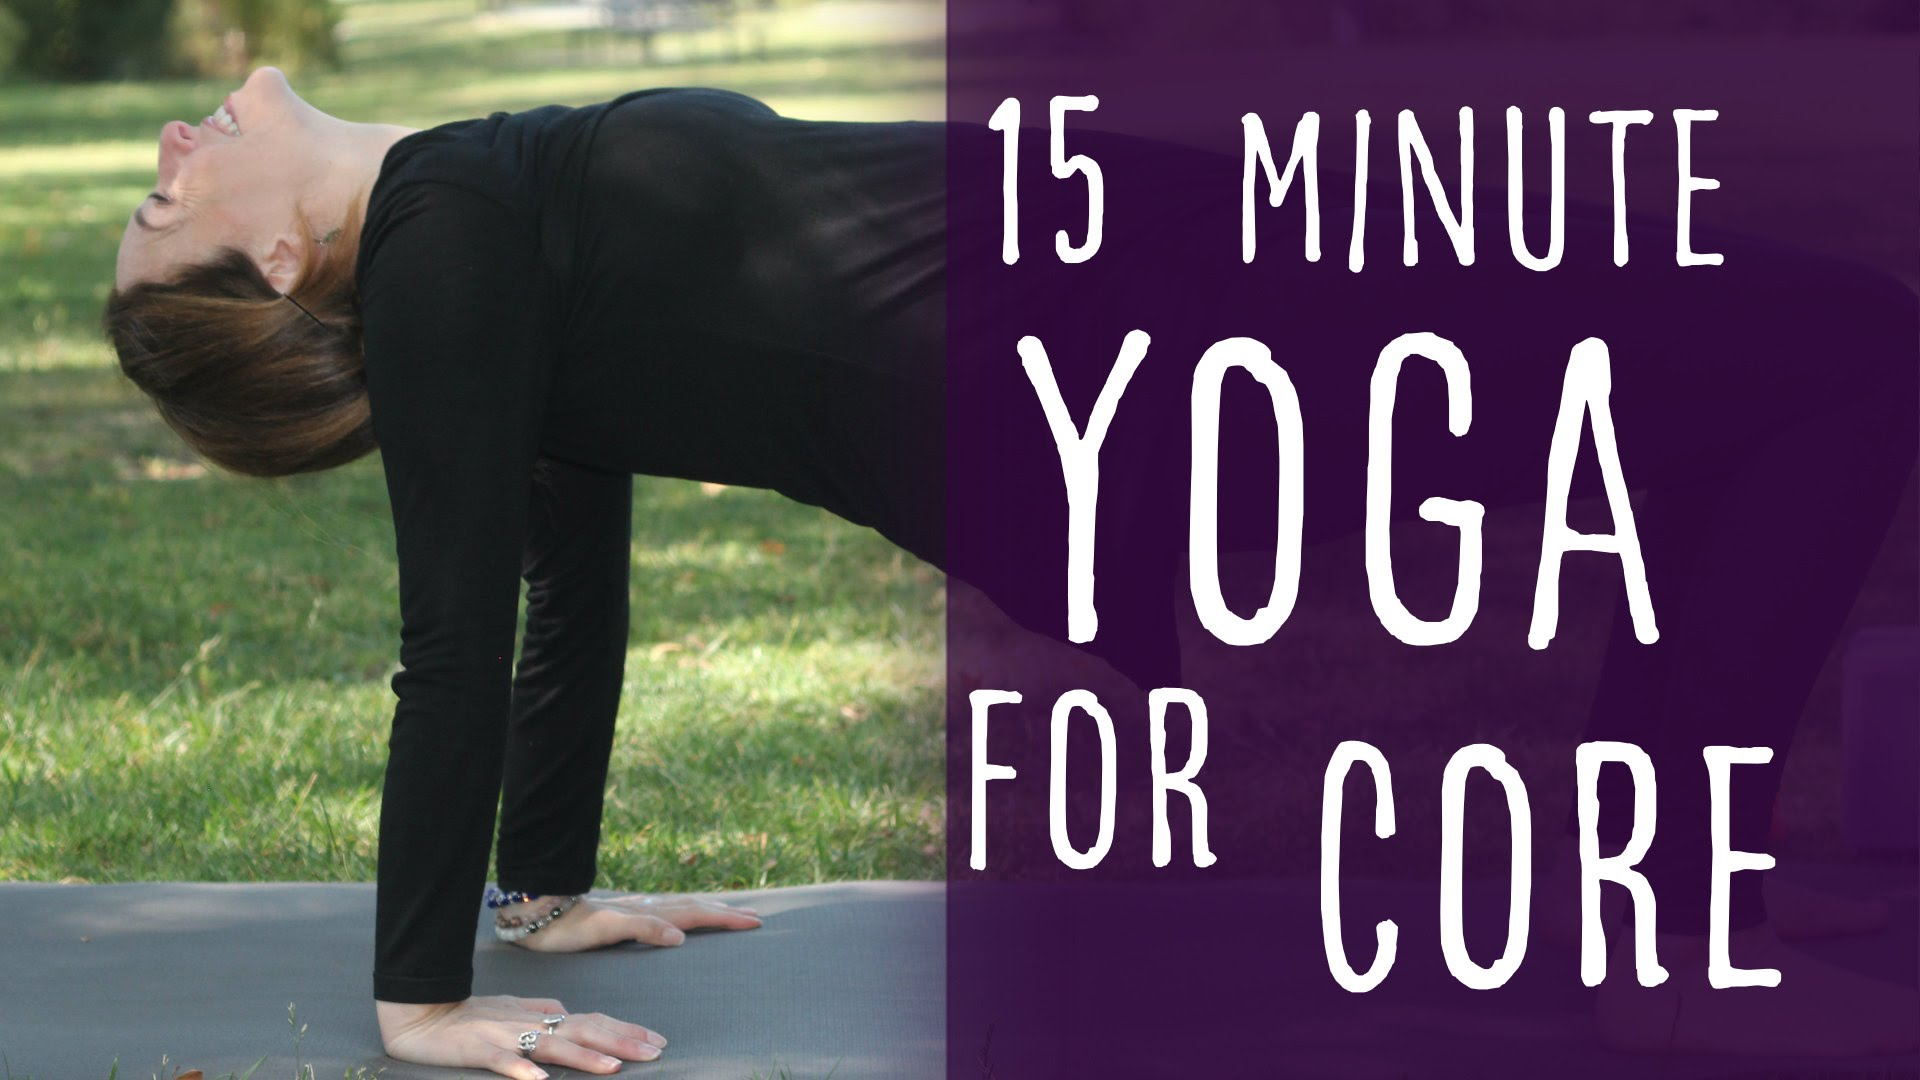 15 Minute Yoga Challenge for Abs and Core Strength